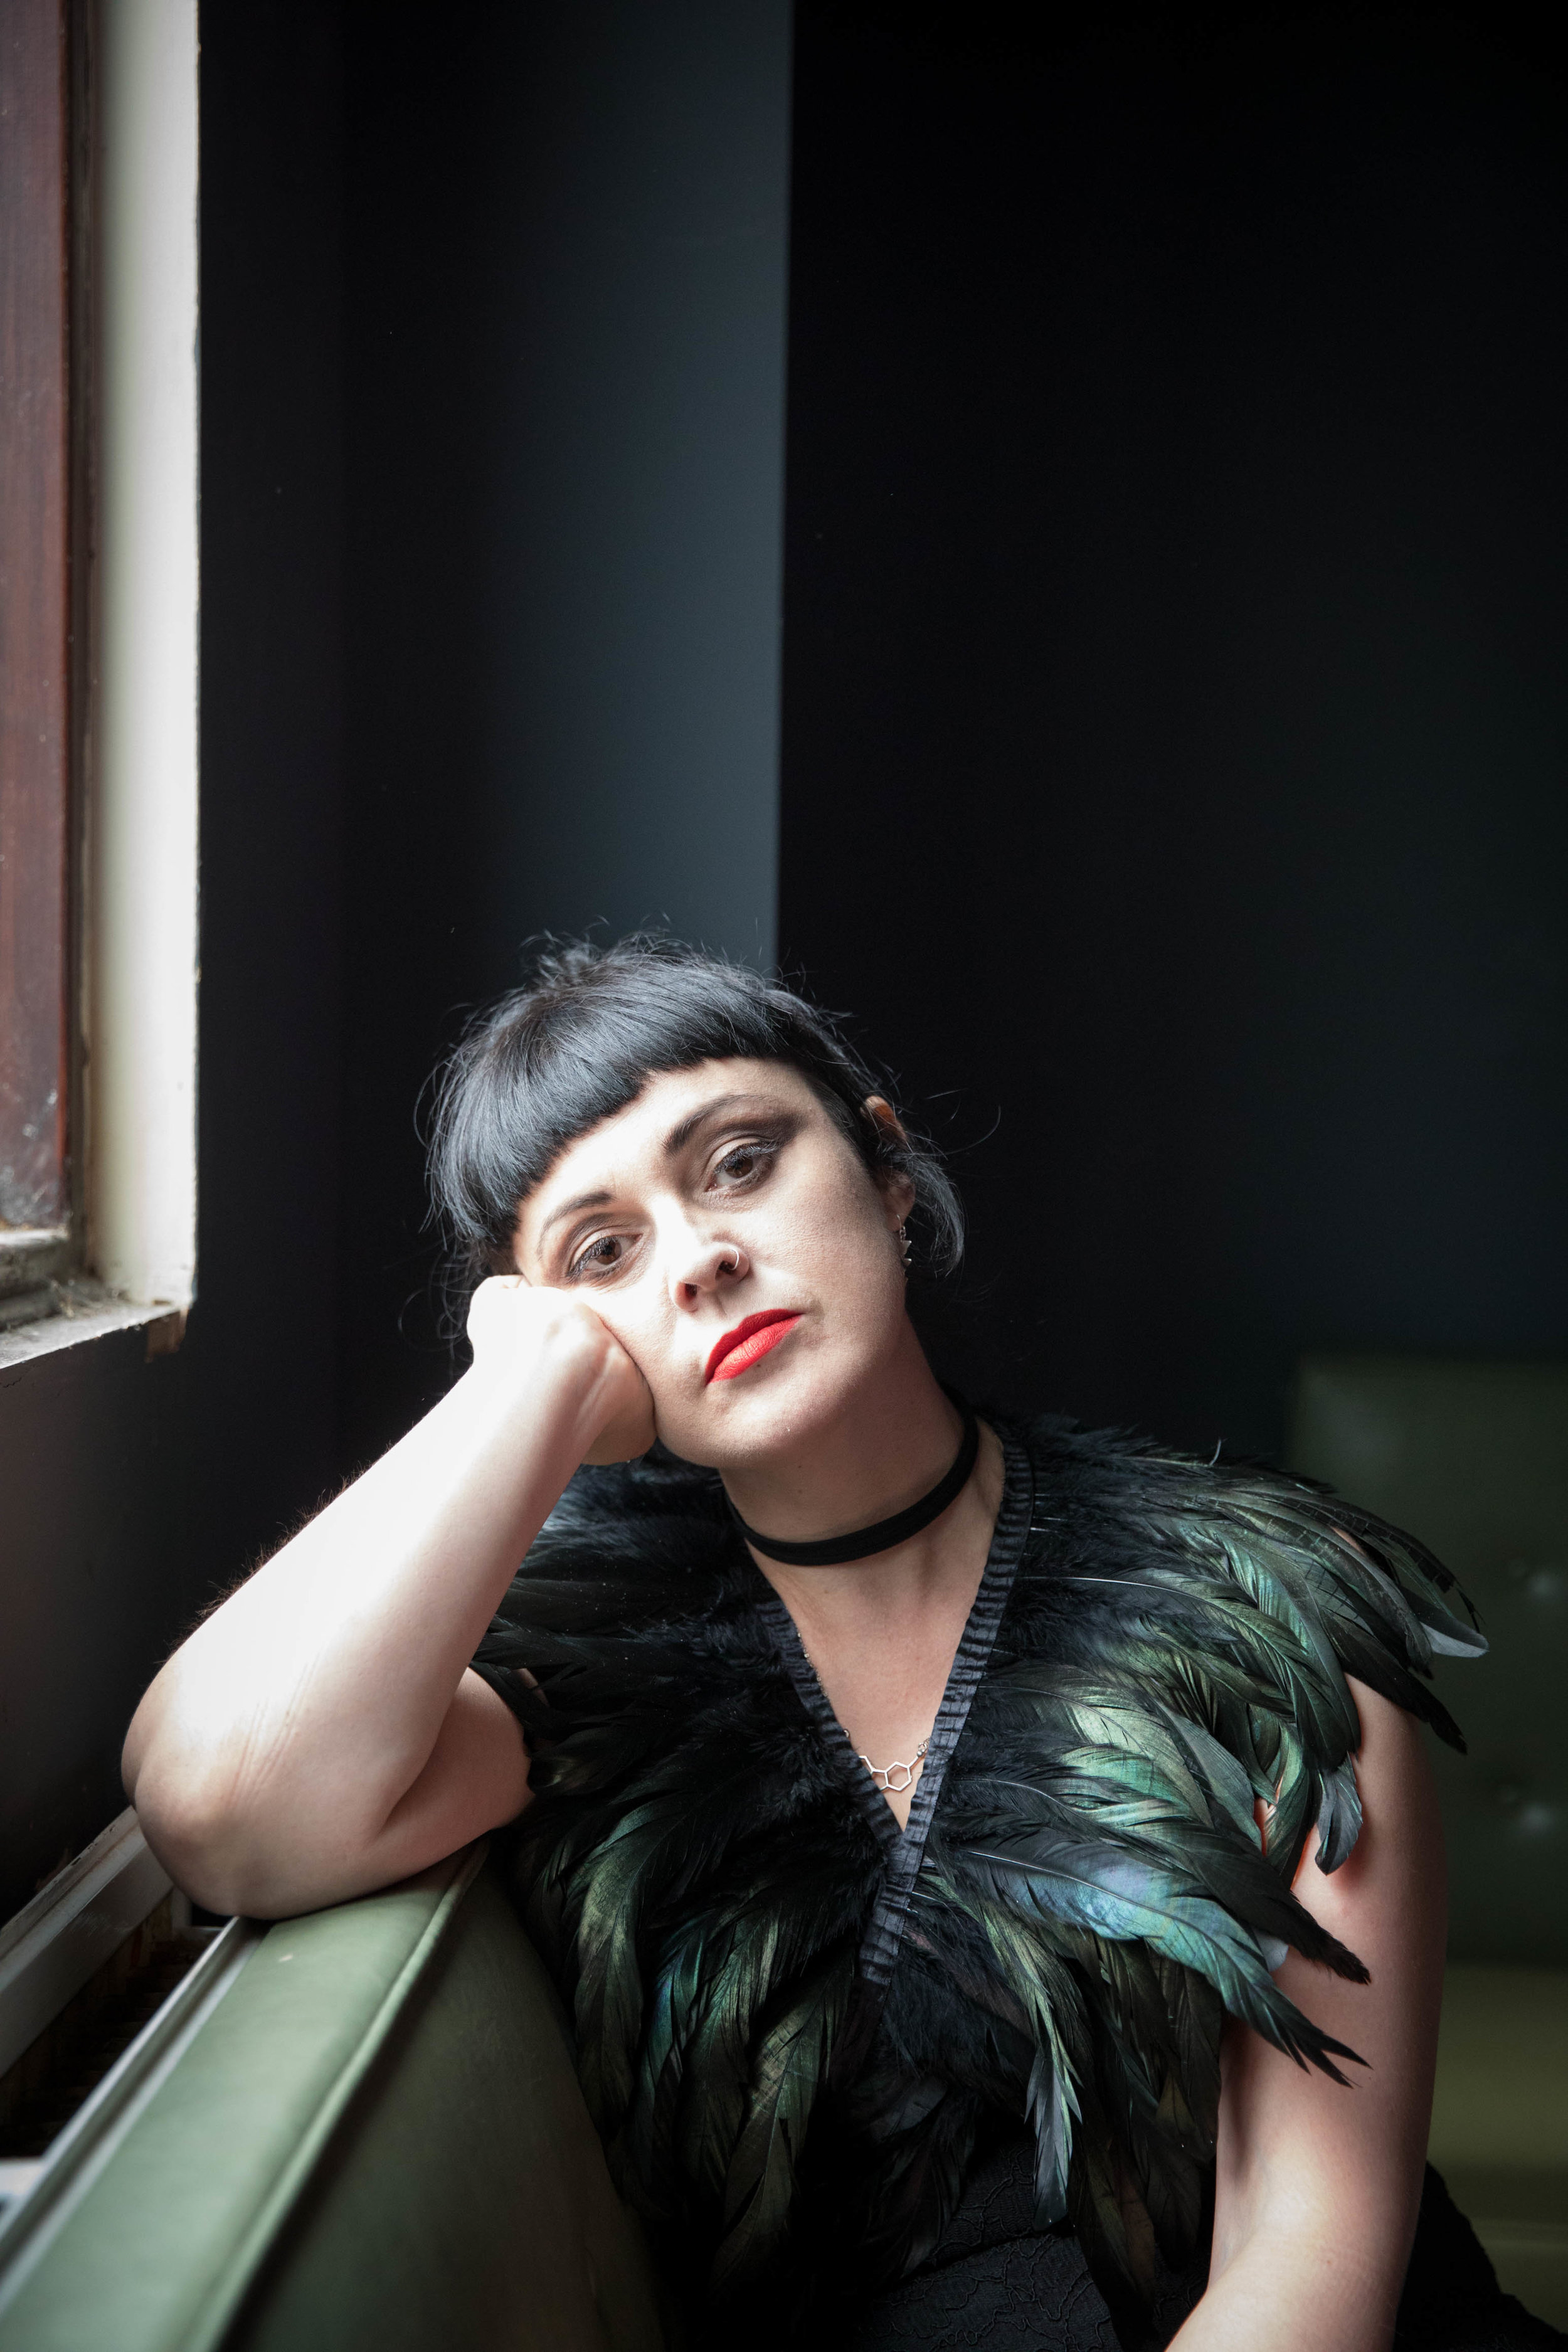 Promotional shot for singer and musician Maria Owen